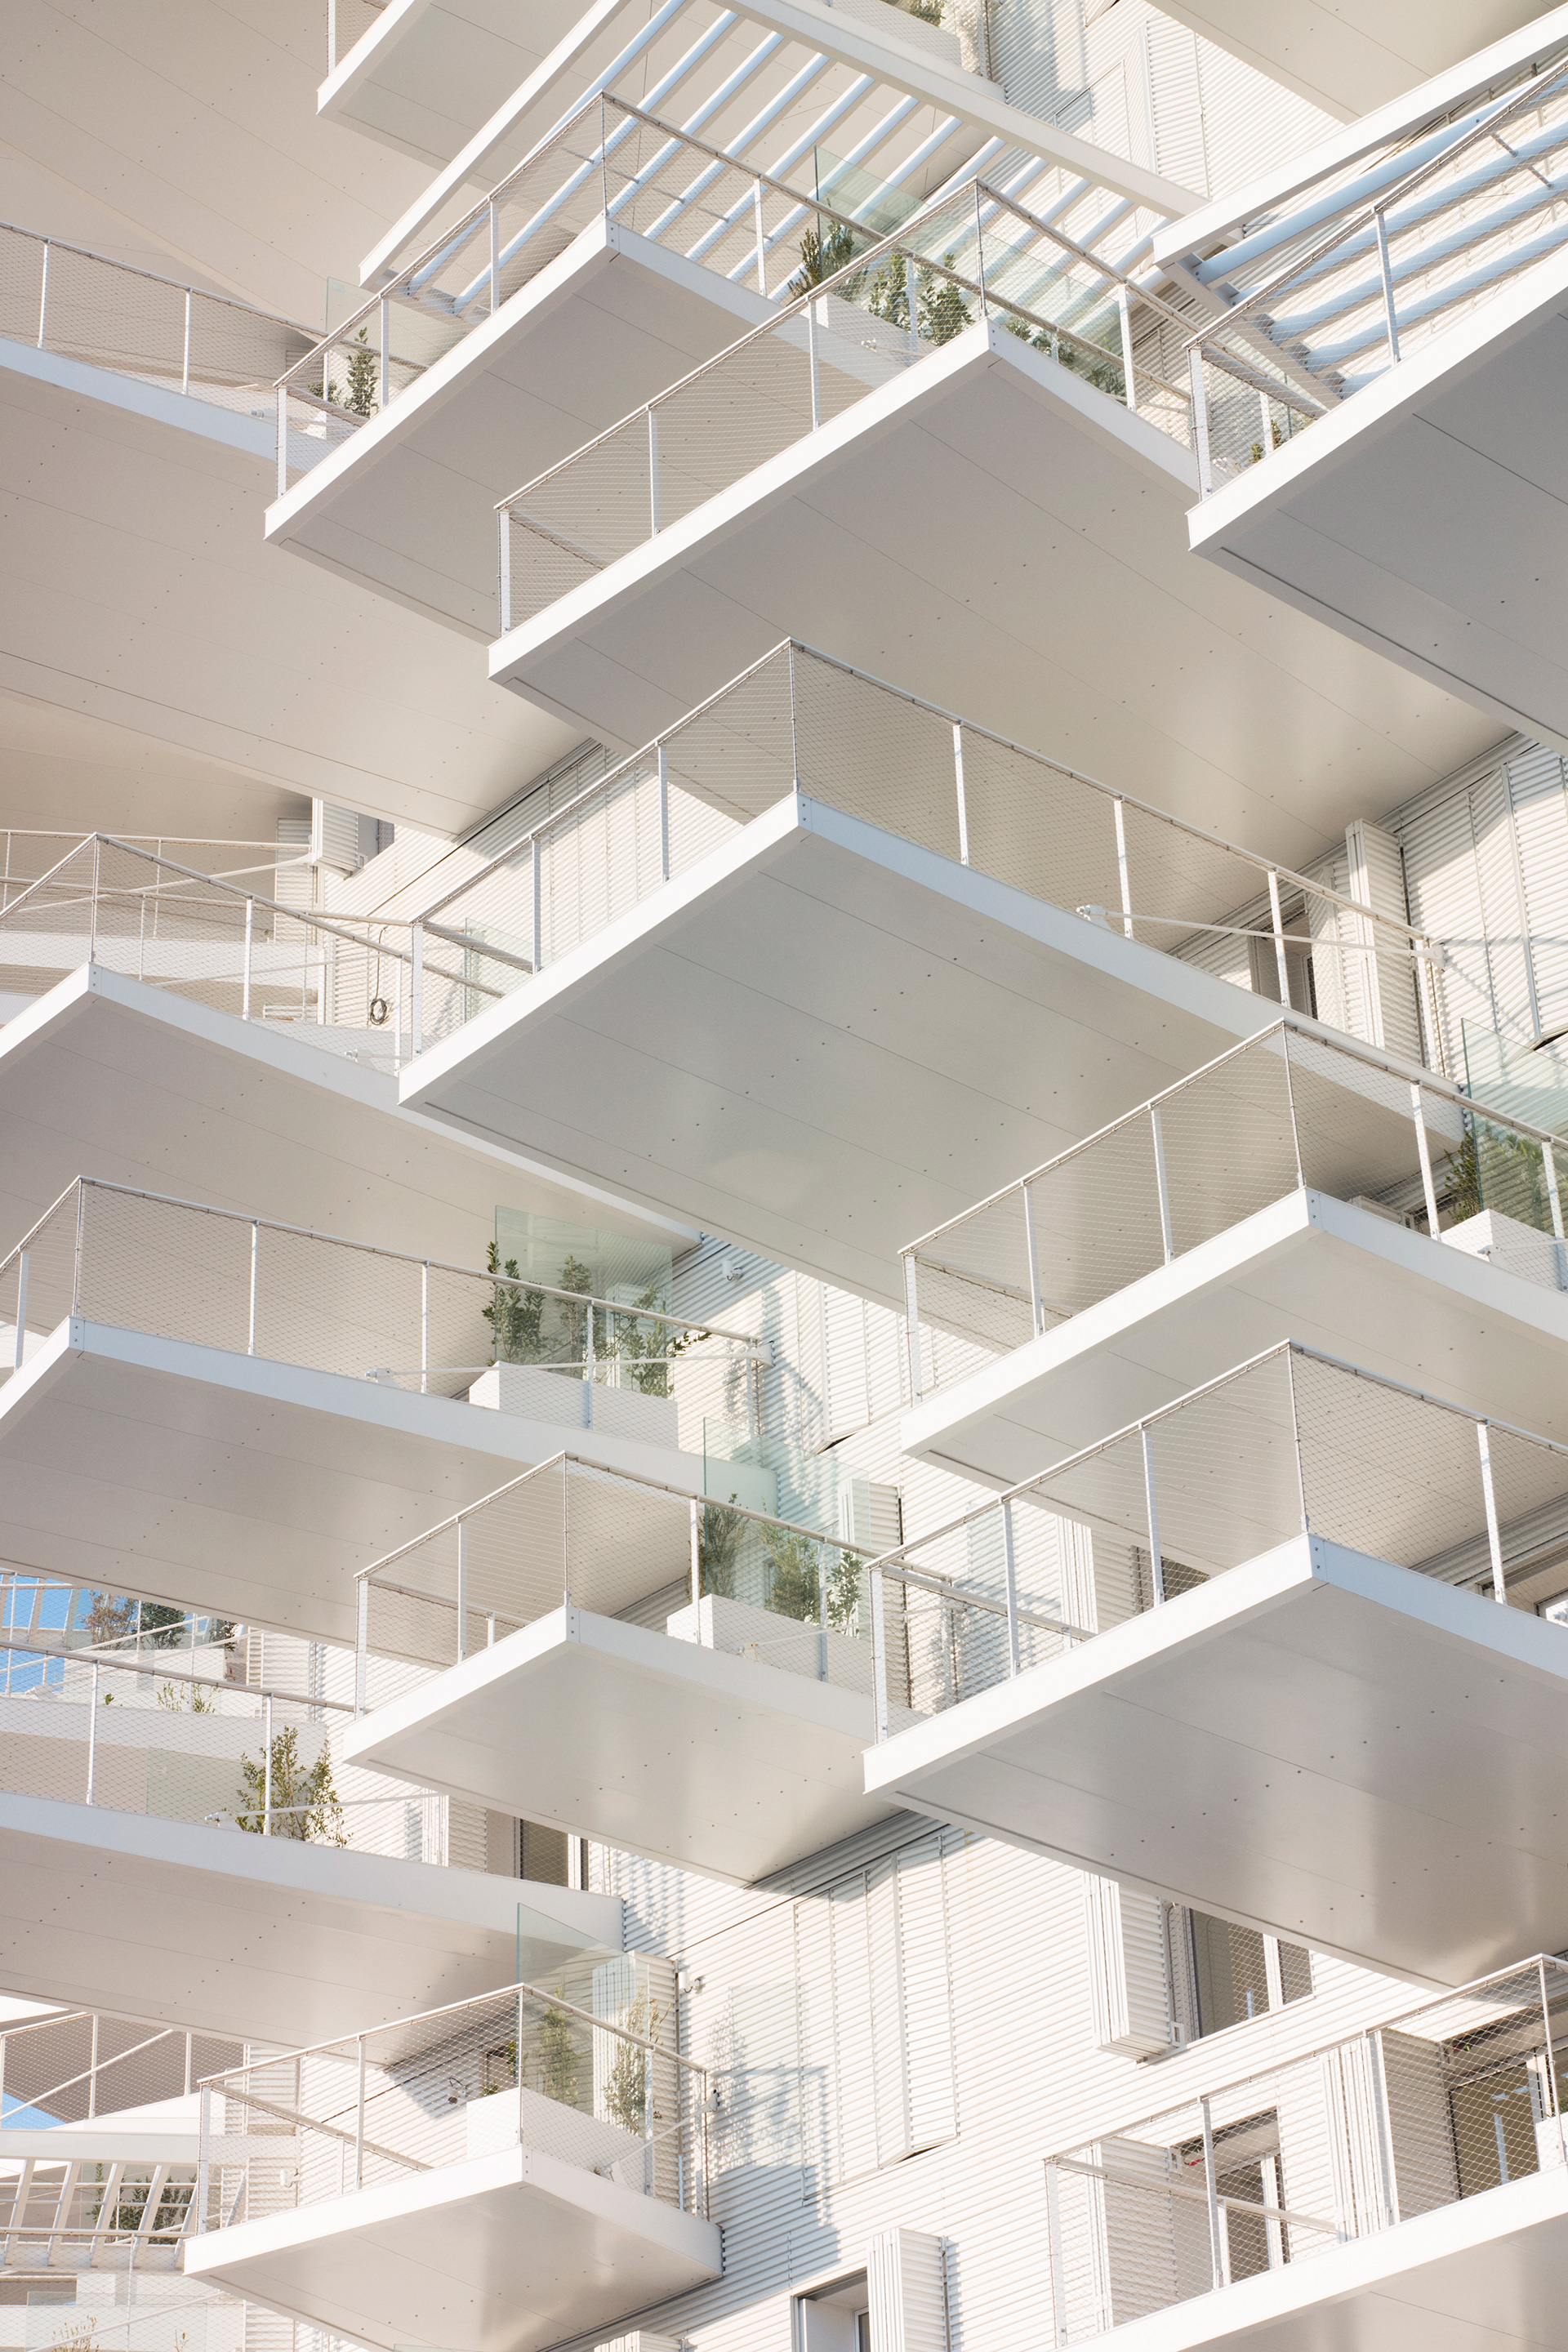 Balconies hanging off the building like the branches of a tree | L'Arbre Blanc| Nicolas Laisné, Manal Rachdi, Sou Fujimoto| STIR